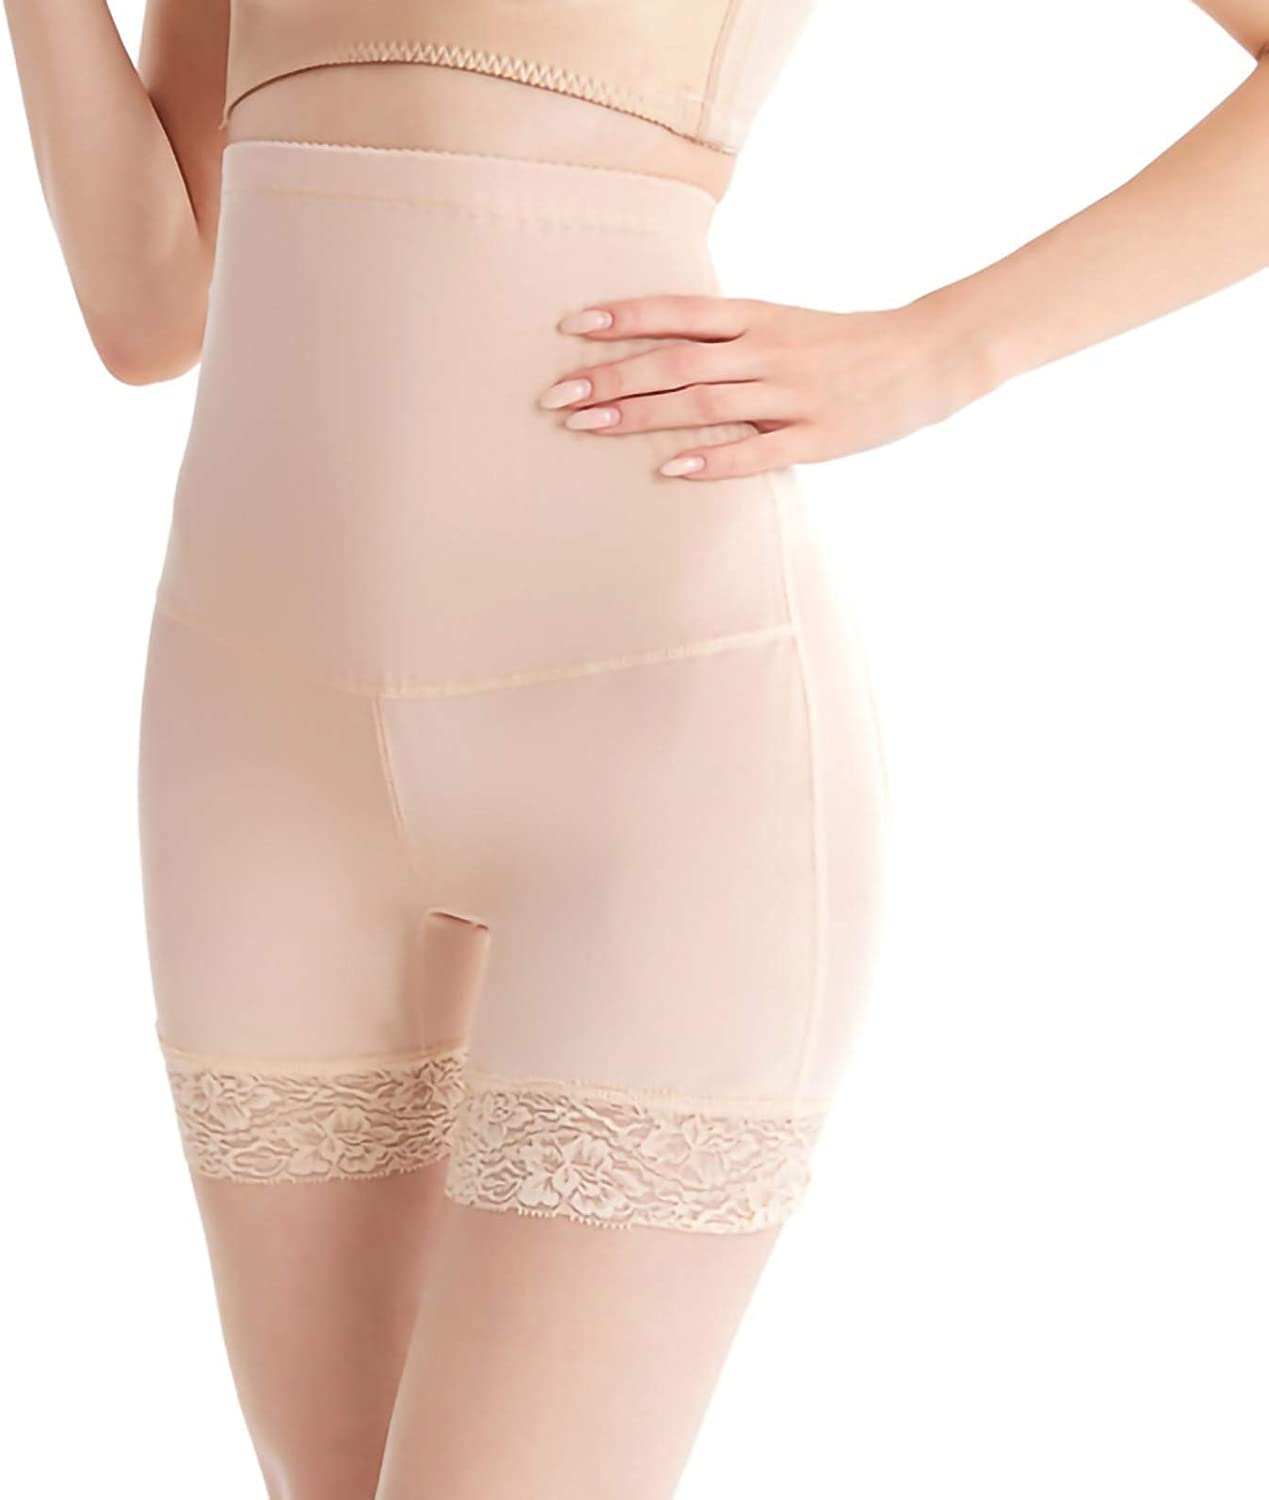 xoxing 1PC Women High Waisted Breech Buttock Raising Shaping Panties Breathable Plus Size Sexy Underpants(D)